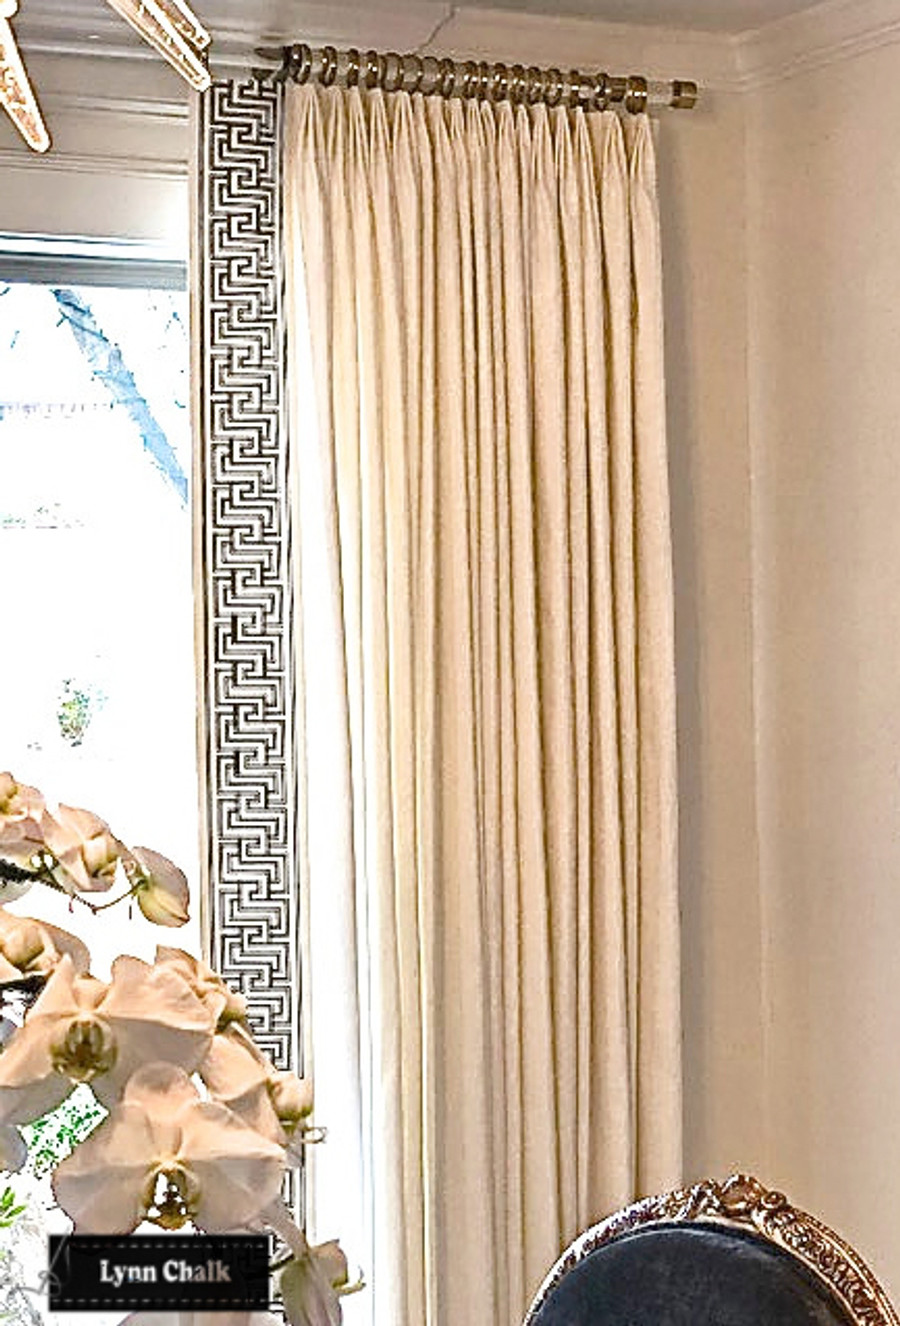 Custom Drapes in Linen with Schumacher Mary McDonald Labyrinth Tape (comes in several colors)